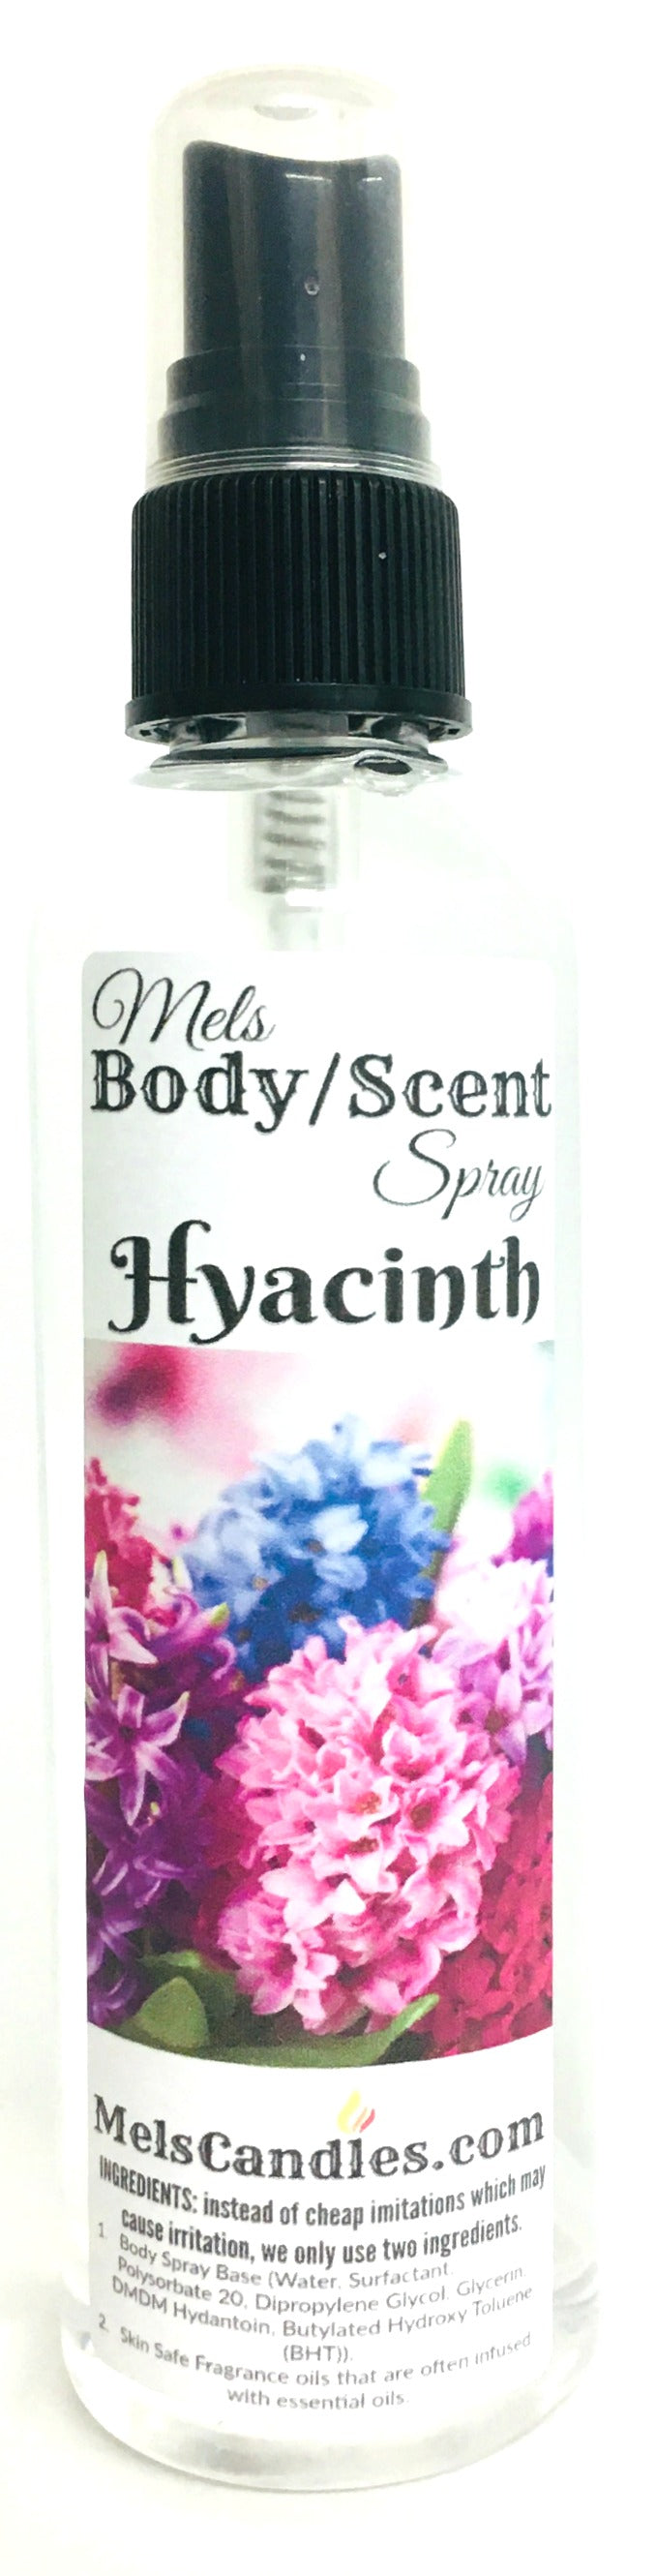 Hyacinth 4oz Bottle of Scent Spray Body Spray, linen Spray air freshener